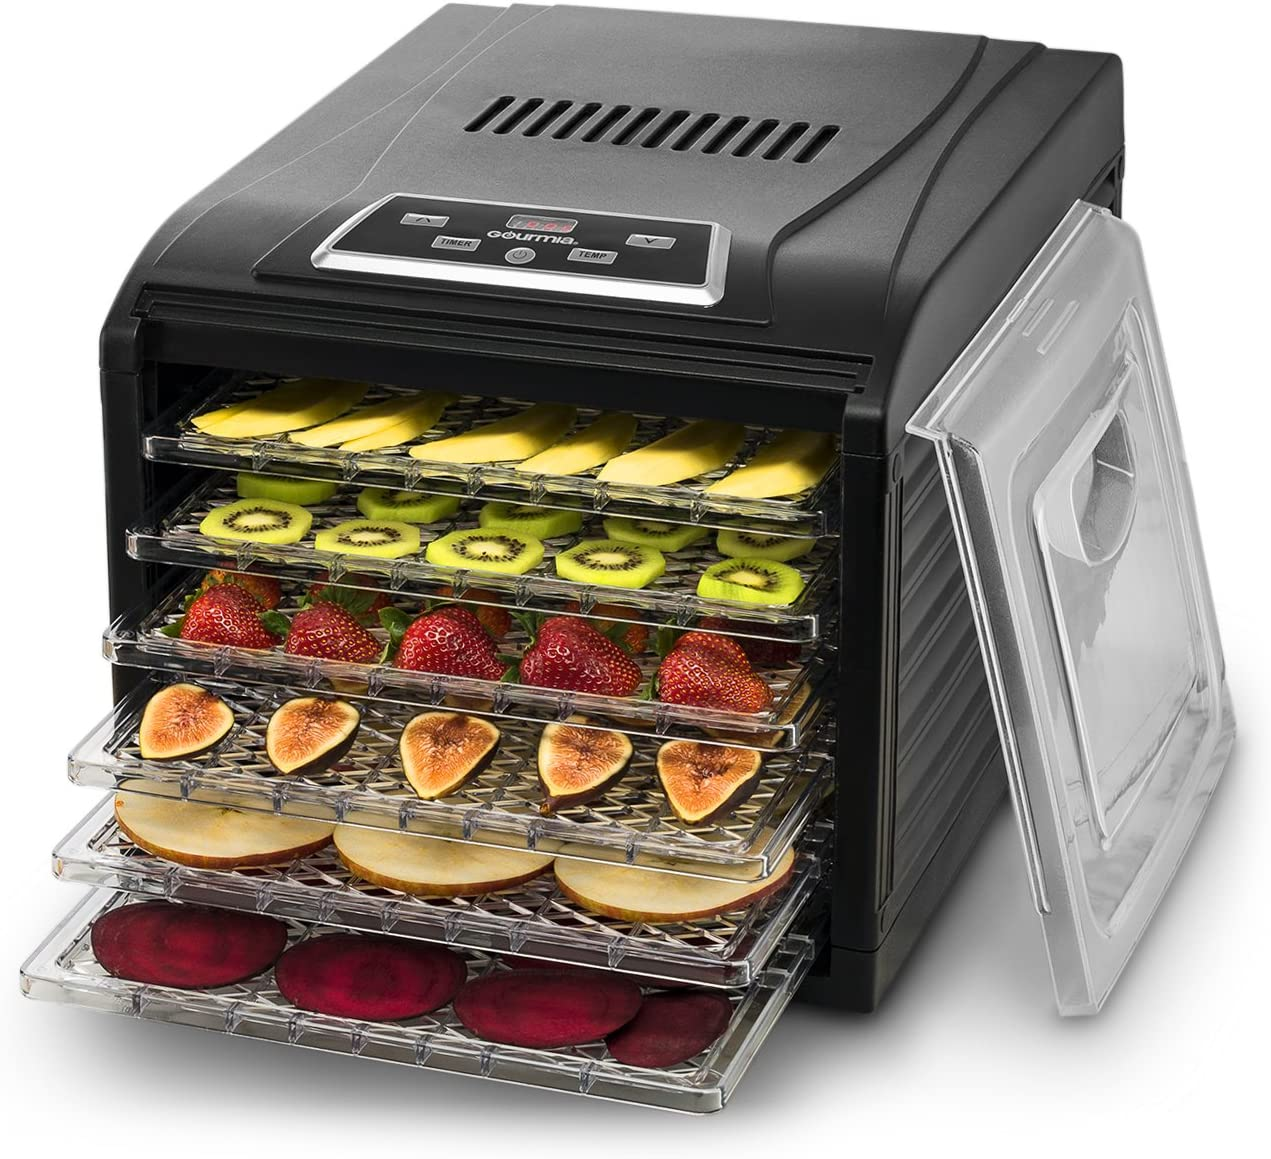 Gourmia GFD1650 Premium Electric Food Dehydrator Machine – Digital Timer and Temperature Control – 6 Drying Trays – Perfect for Beef Jerky, Herbs, Fruit Leather – BPA Free – Black